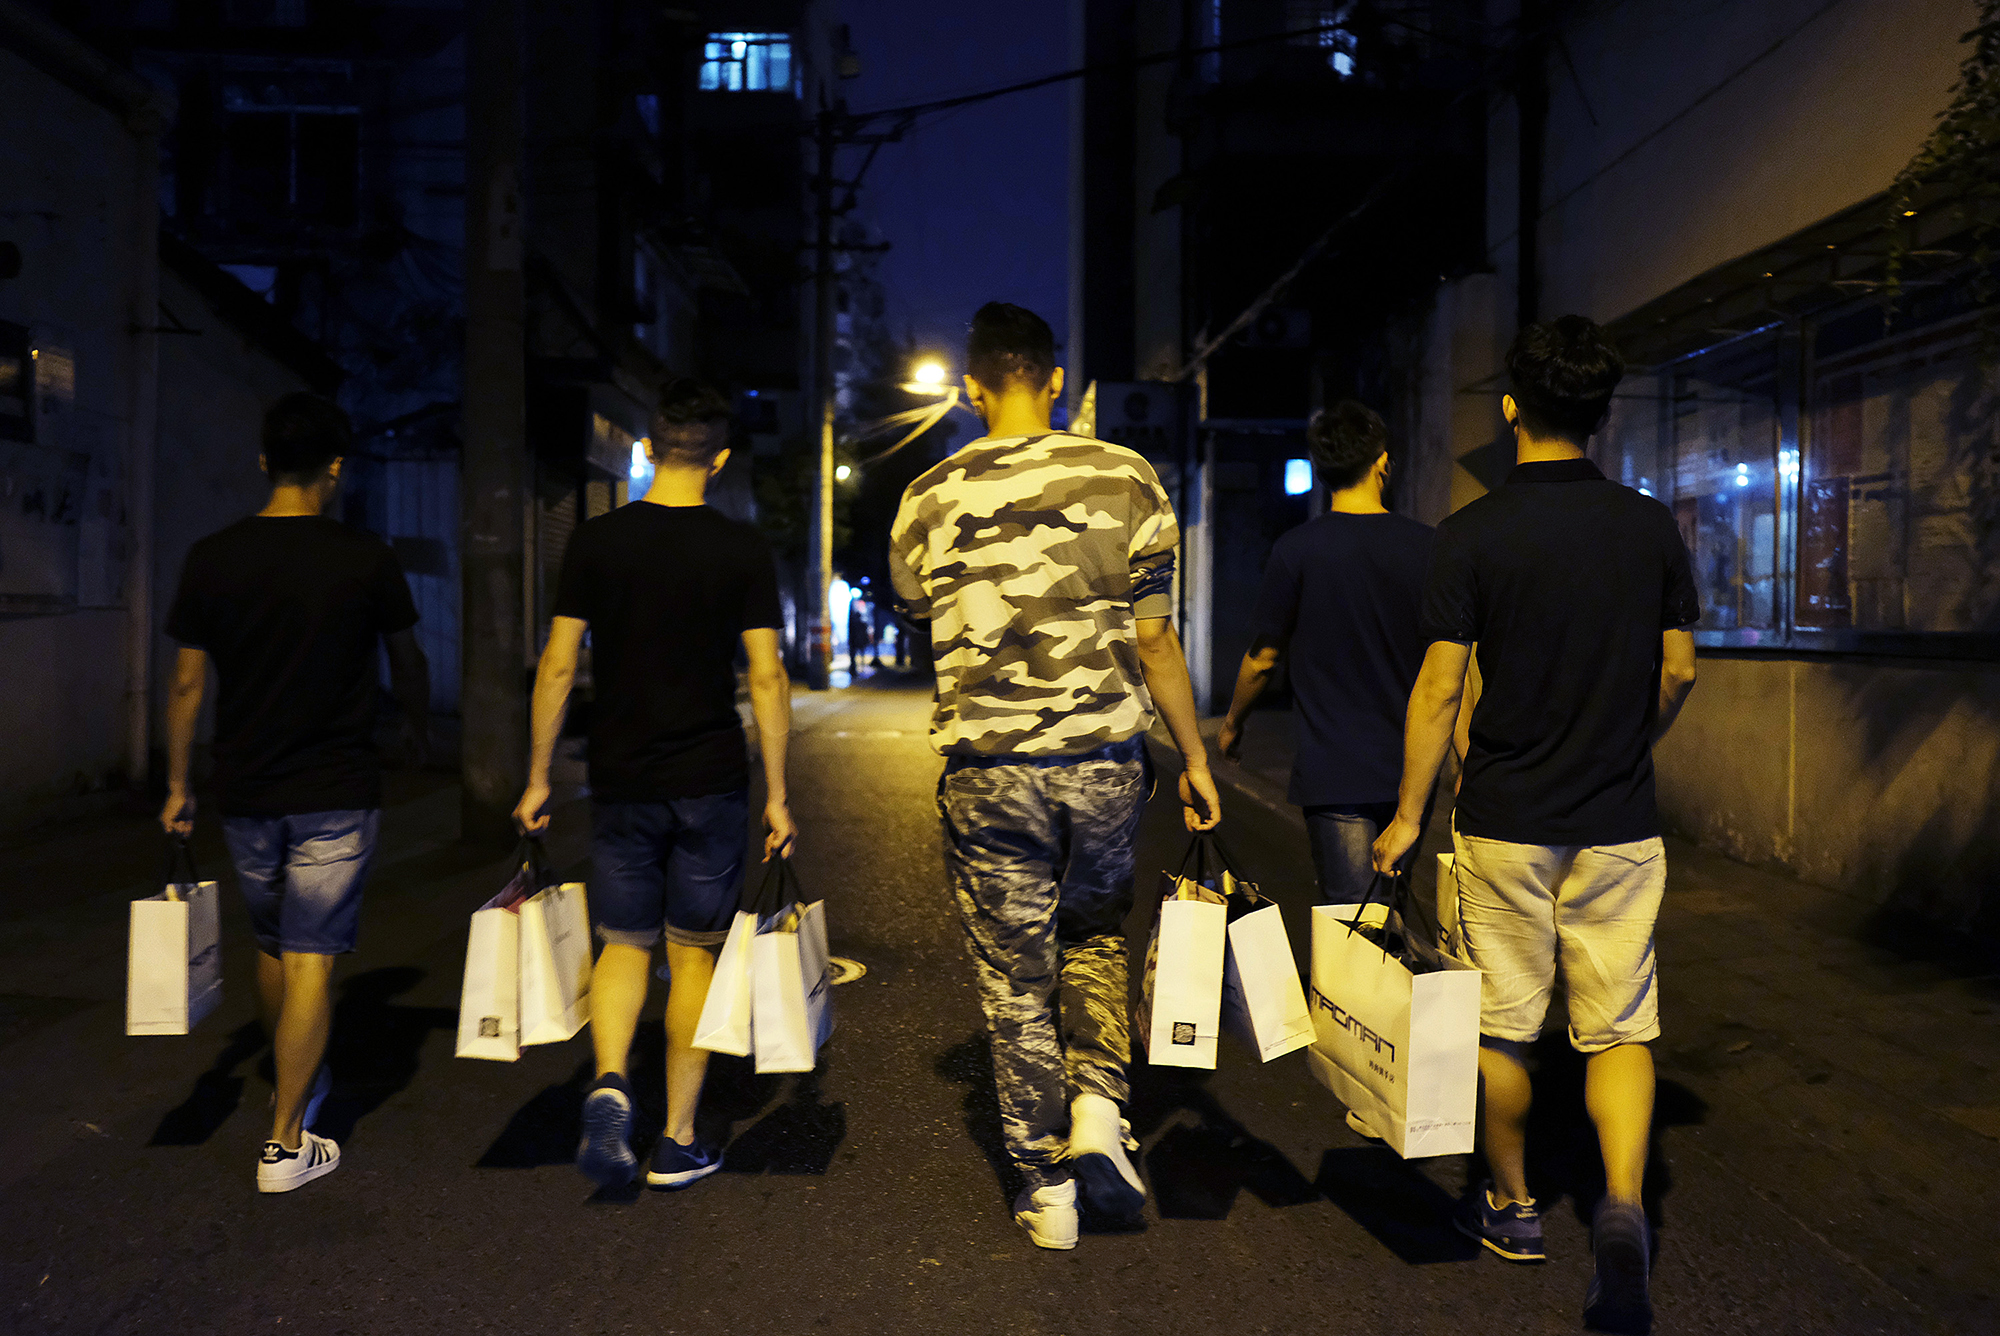 Students head back to their apartment after shopping with mentors on a bustling Chengdu commercial street, October 1, 2016.